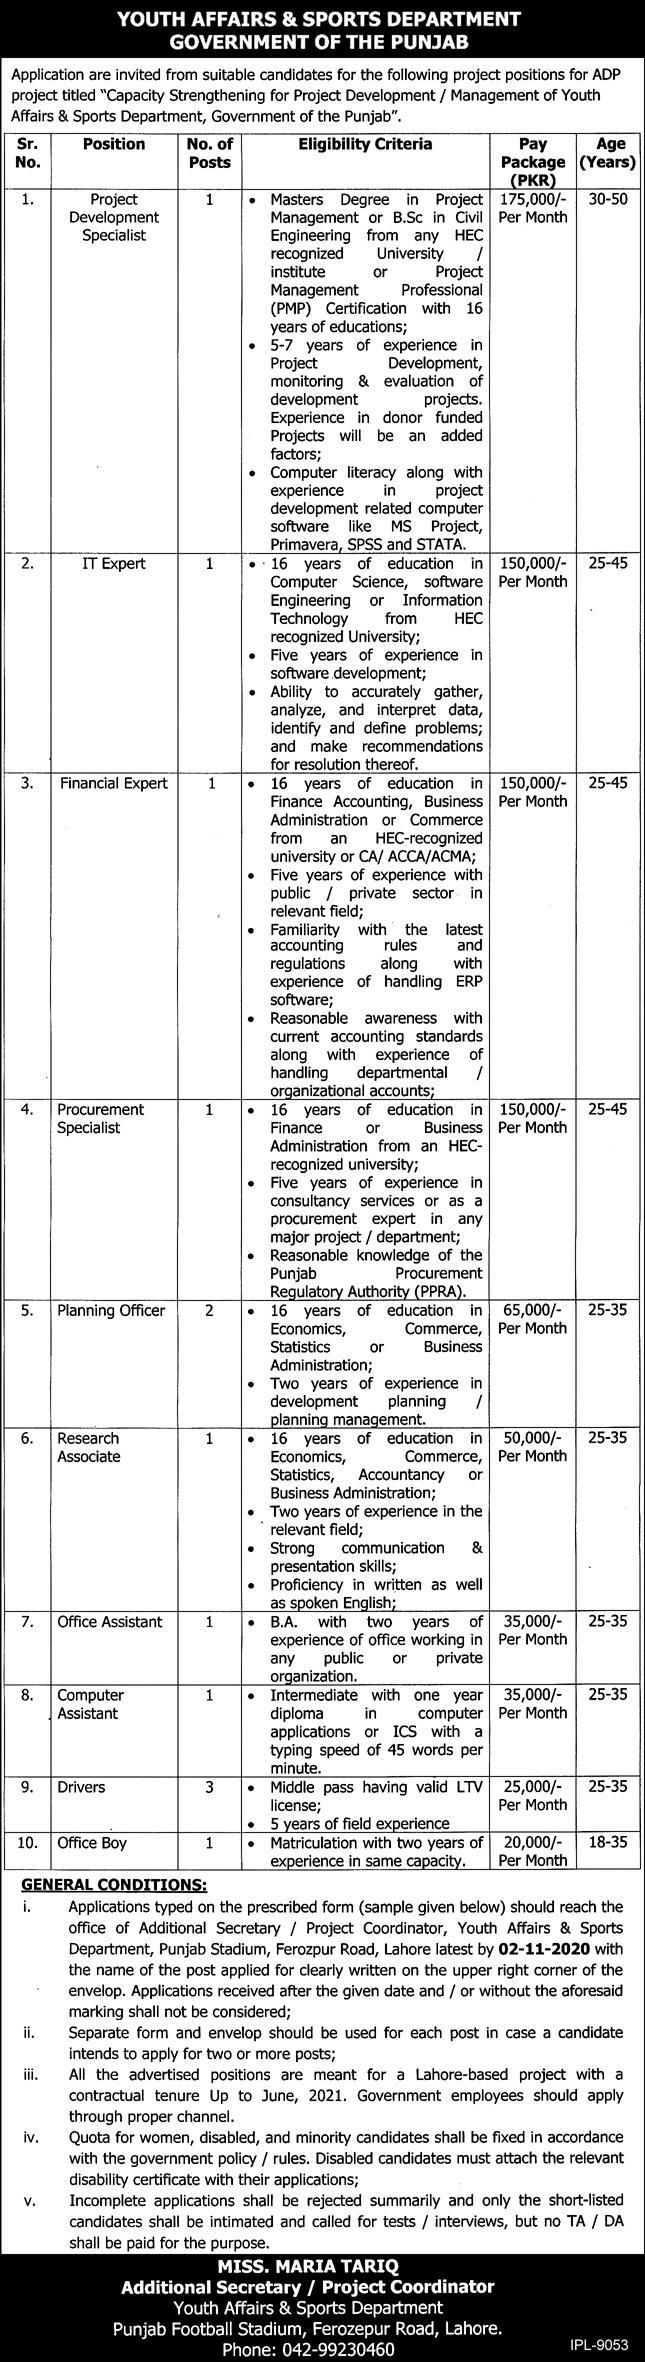 Youth Affairs & Sports Department Jobs